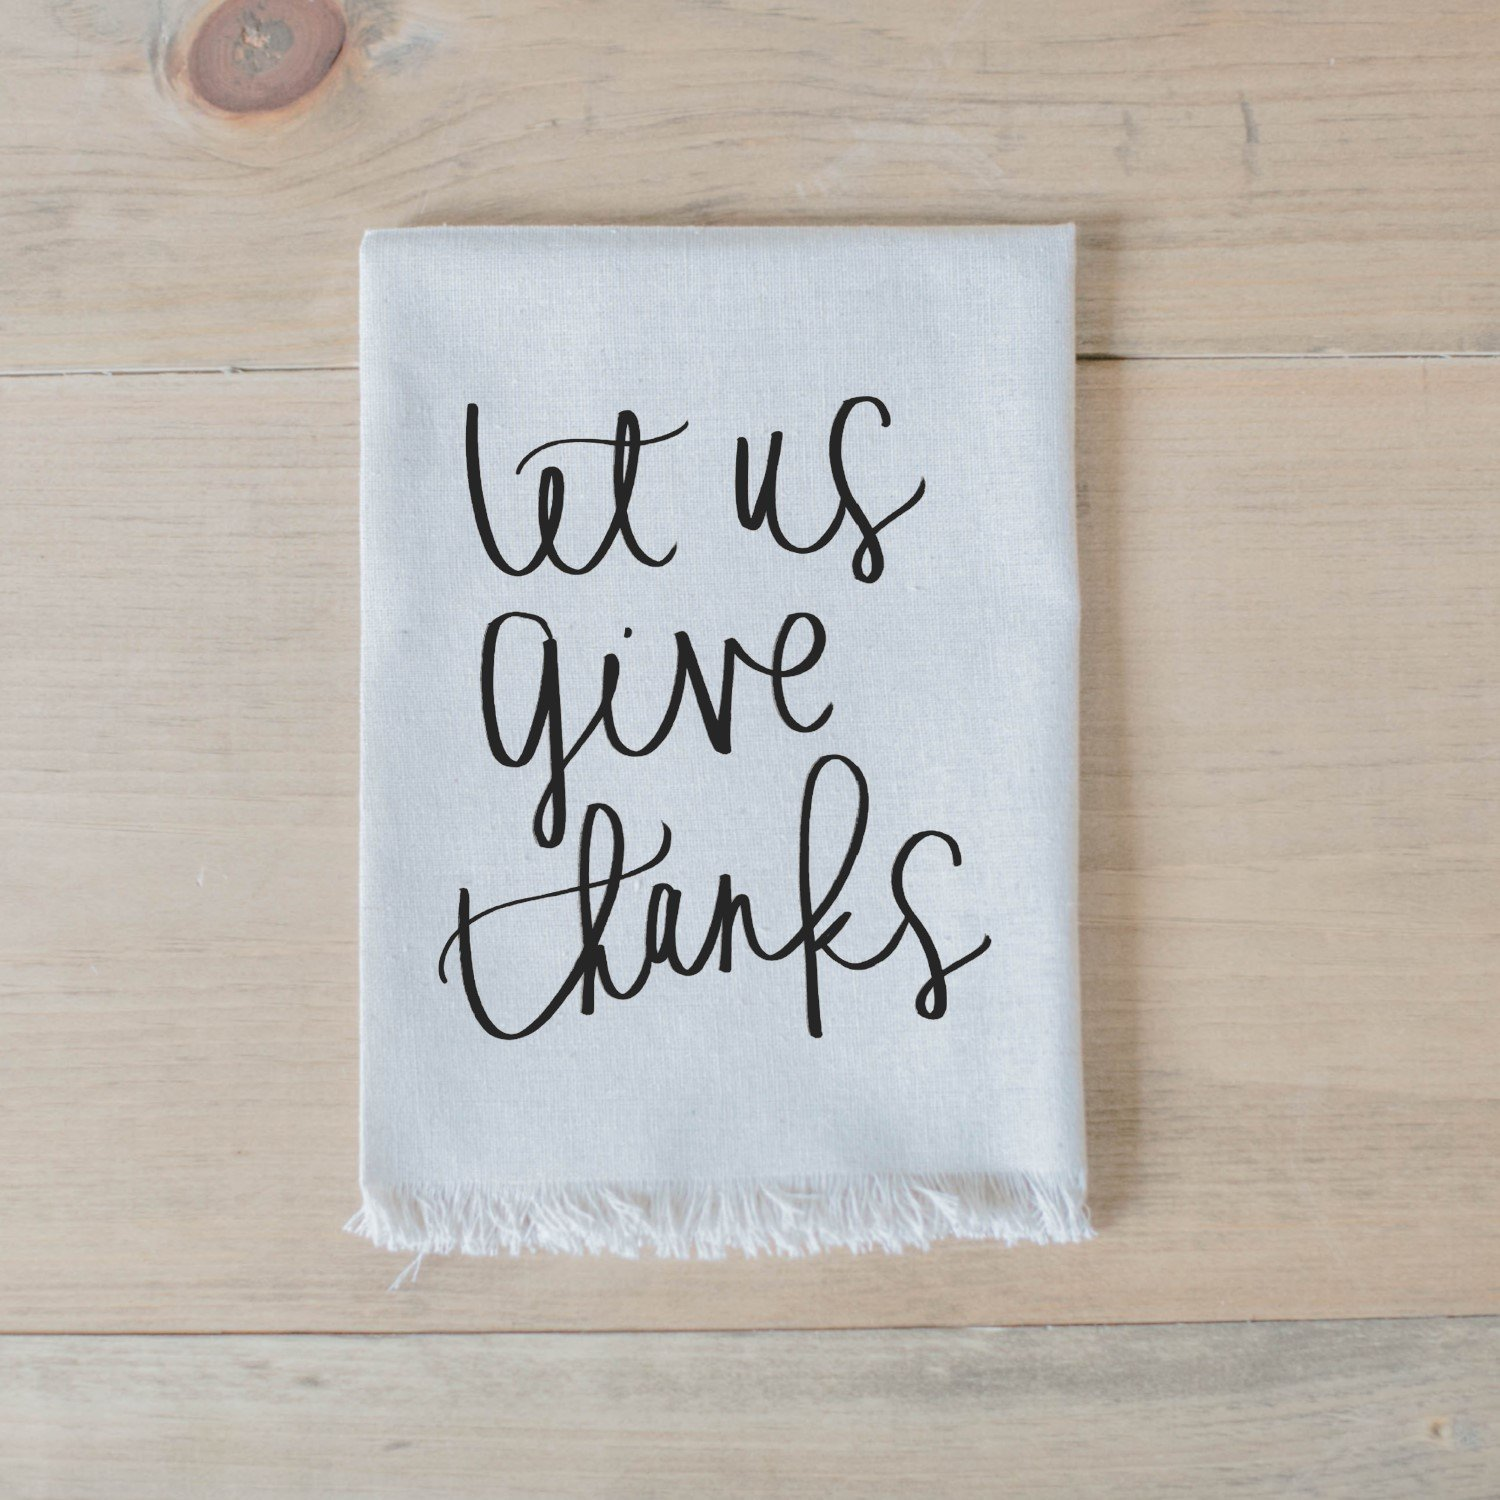 Let Us Give Thanks Napkin, home decor, housewarming gift, tableware, table scene, place setting, set the table, thanksgiving, fall decor